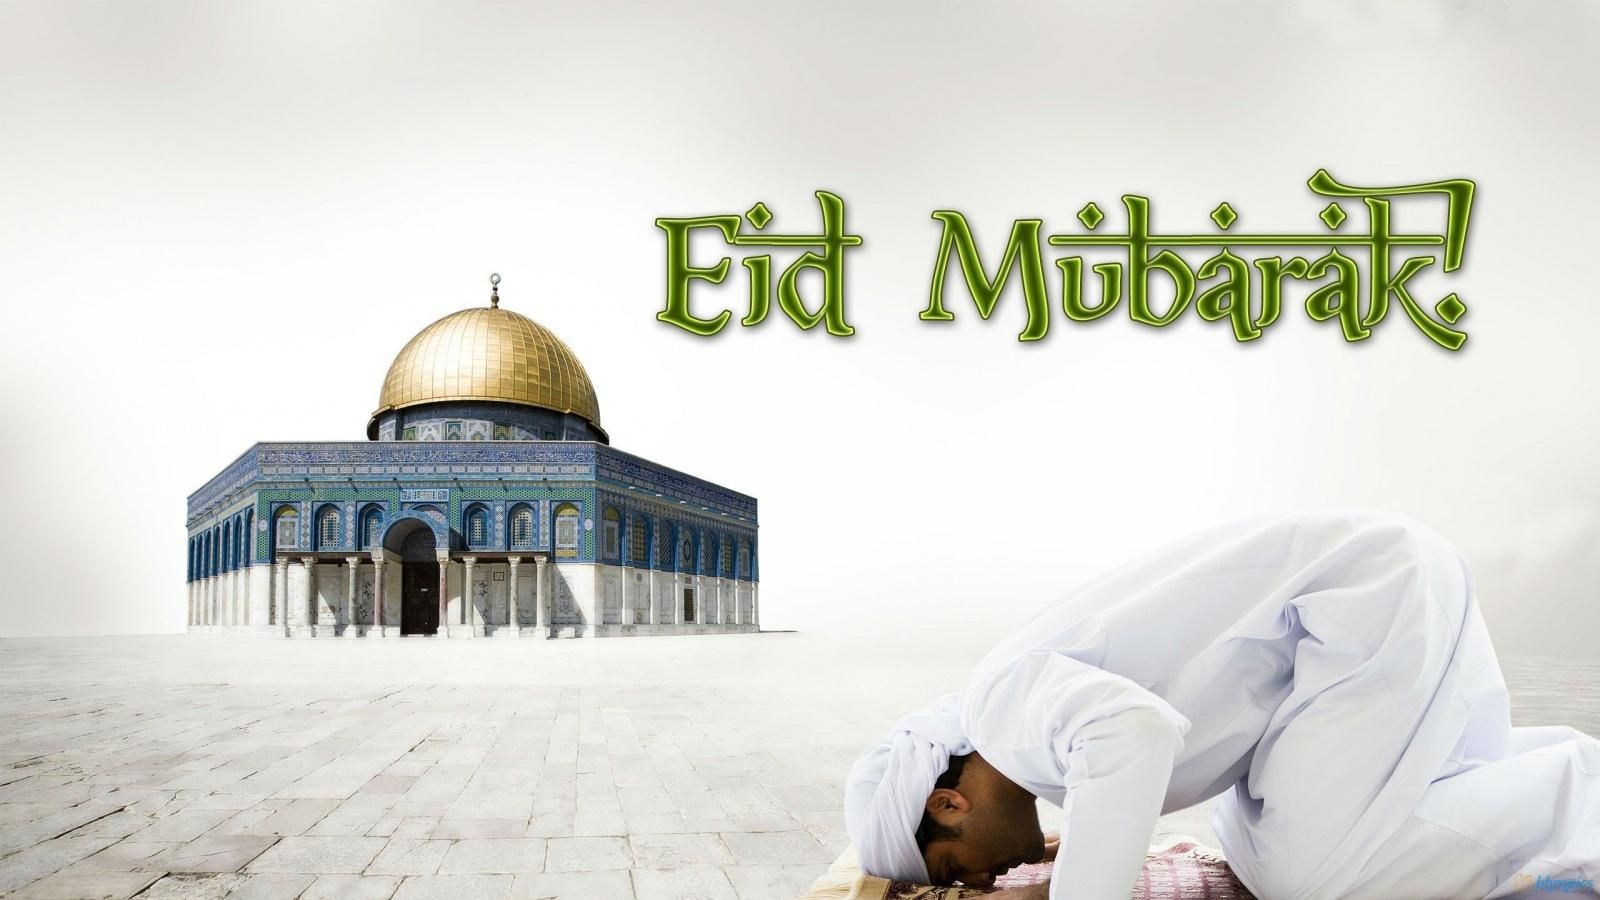 Eid Mubarak Hd Wallpaper Pictures For Boyfriend And Girlfriend Eid Mubarak Wallpaper Eid Mubarak Images Islamic Wallpaper